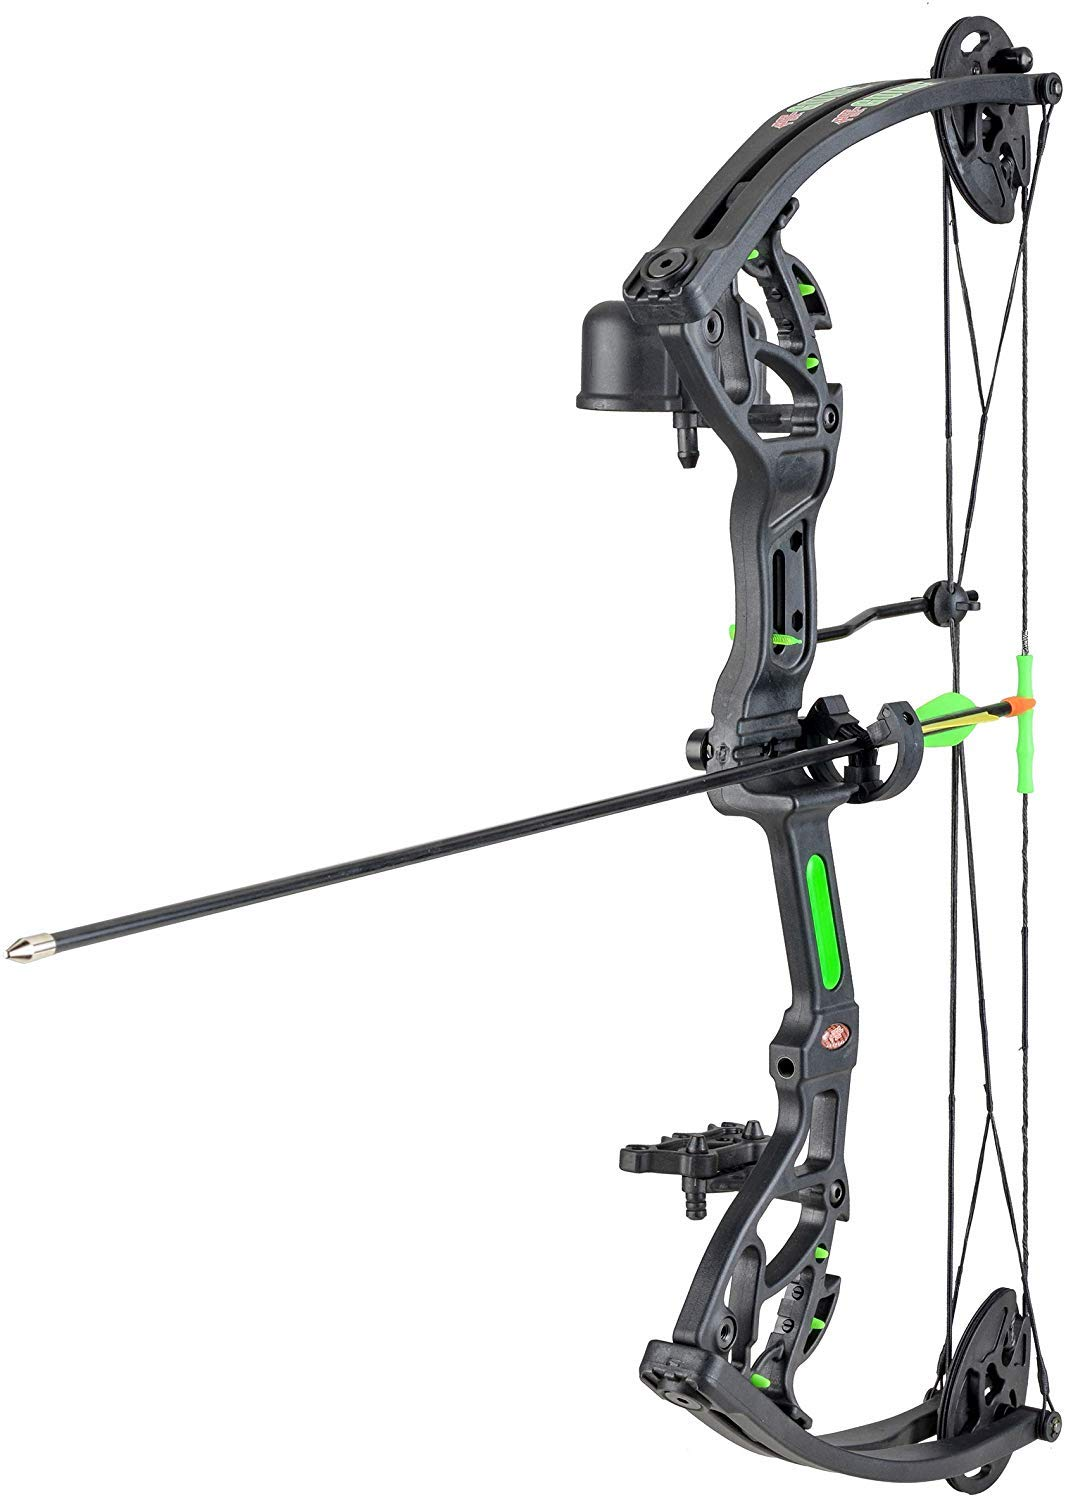 Tihebeyan 5 Arrow Bow Quiver Accessory Universal Archery for Bow Quiver,Quiet Shooting For Compound Bow